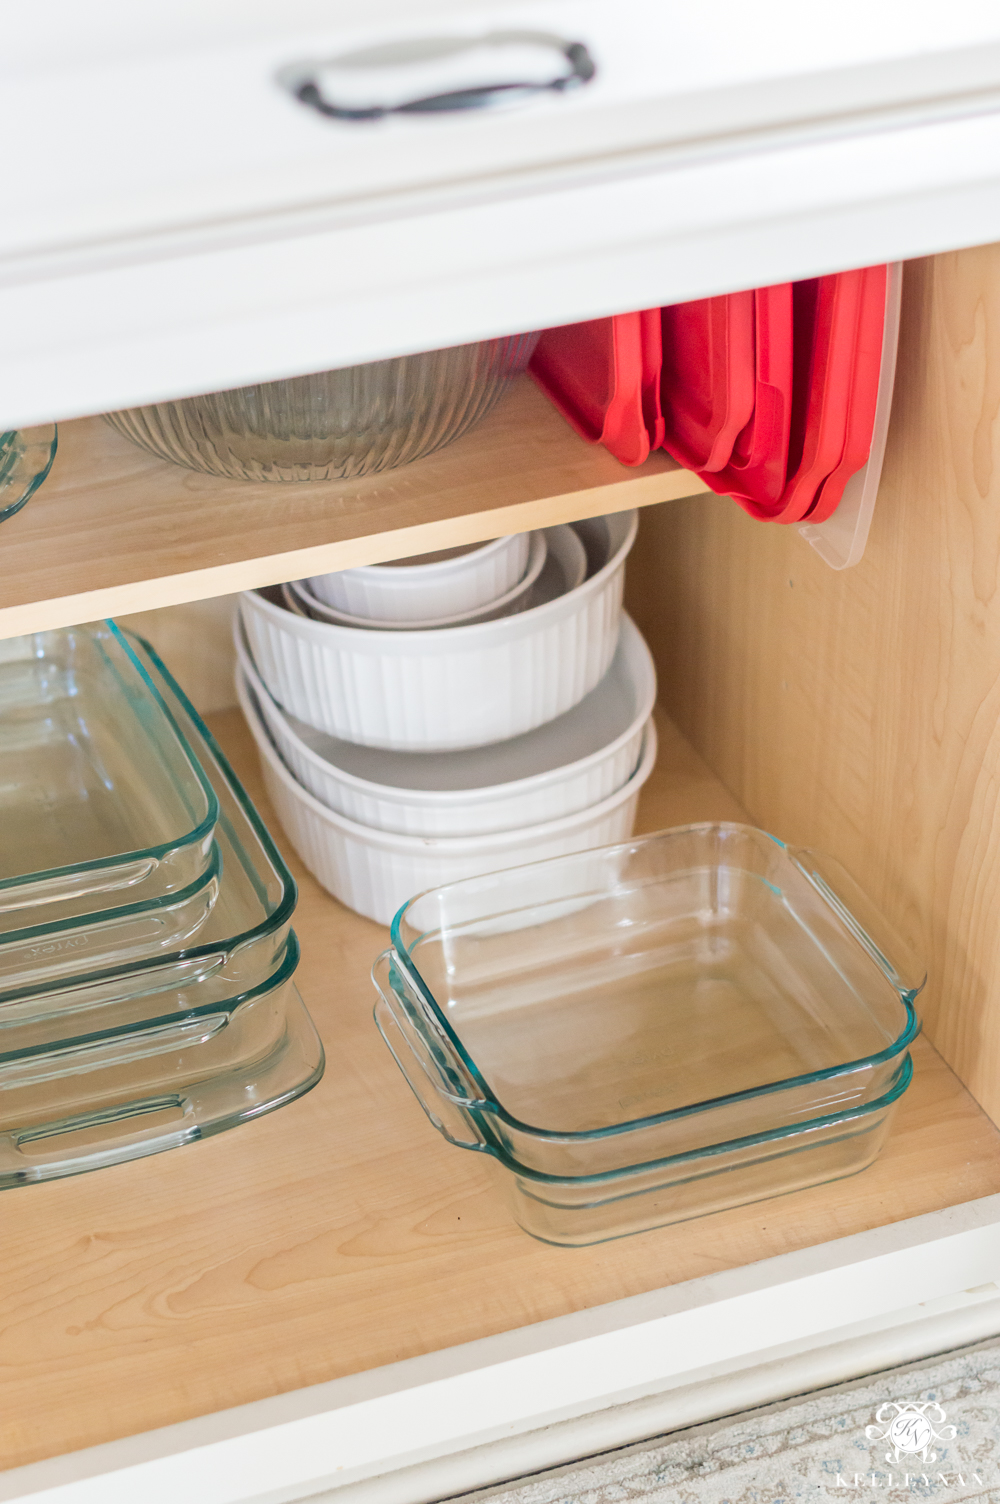 Organizing Glass Baking Dishes - corningware and pyrex